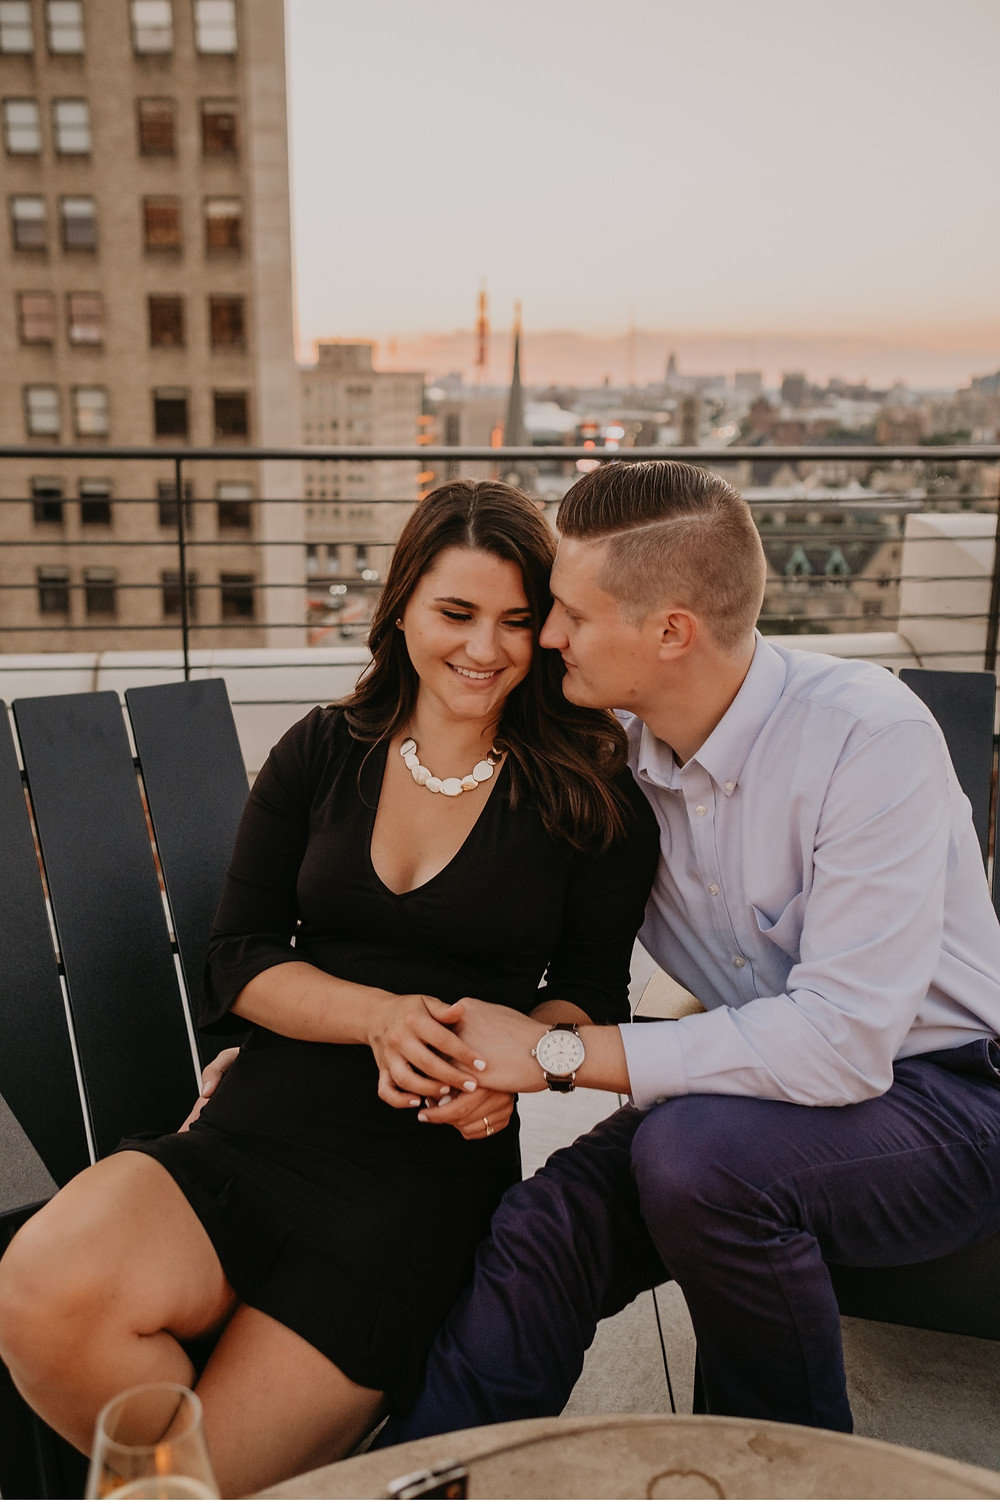 Sunset engagement photos at The Monarch Club lookout. Photographed by Nicole Leanne Photography.